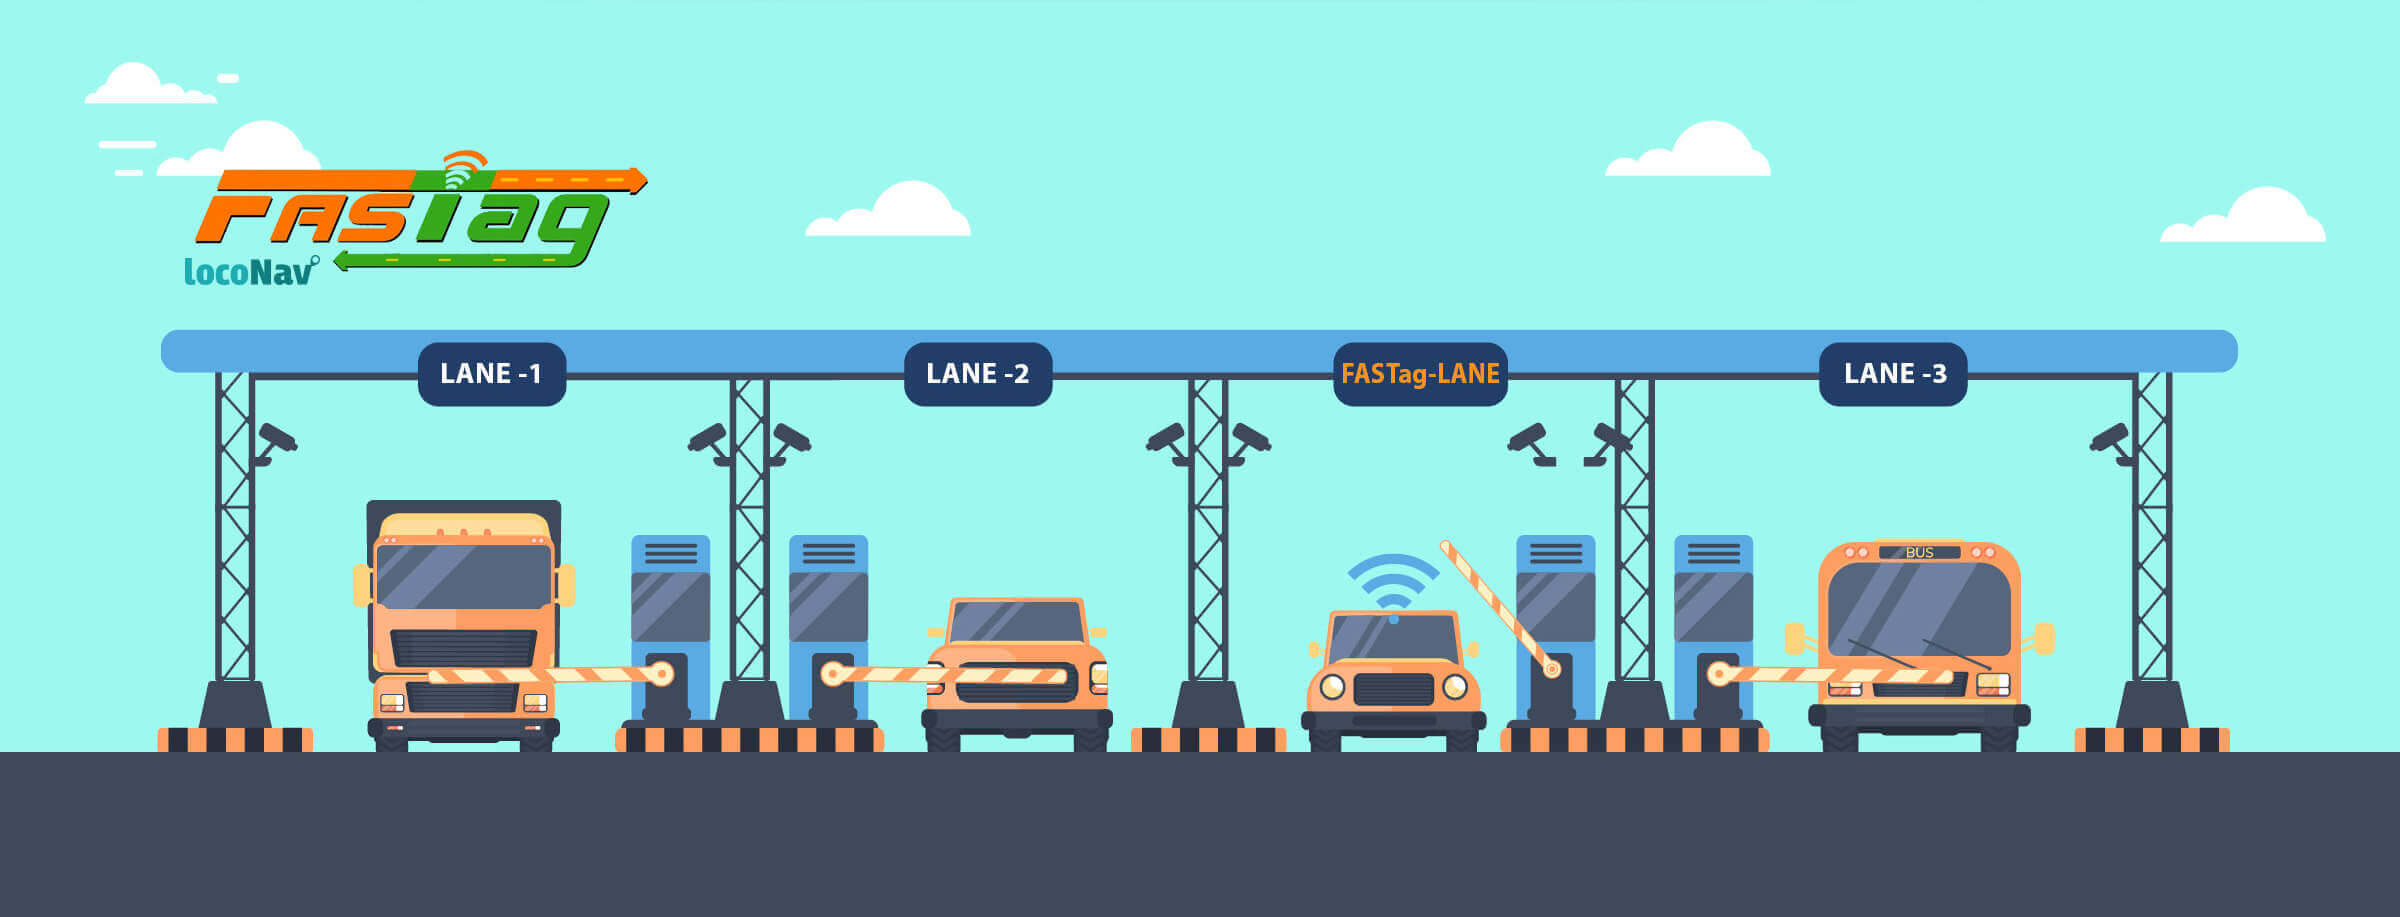 Fastag Recharge Pay Highway Toll Online Loconav